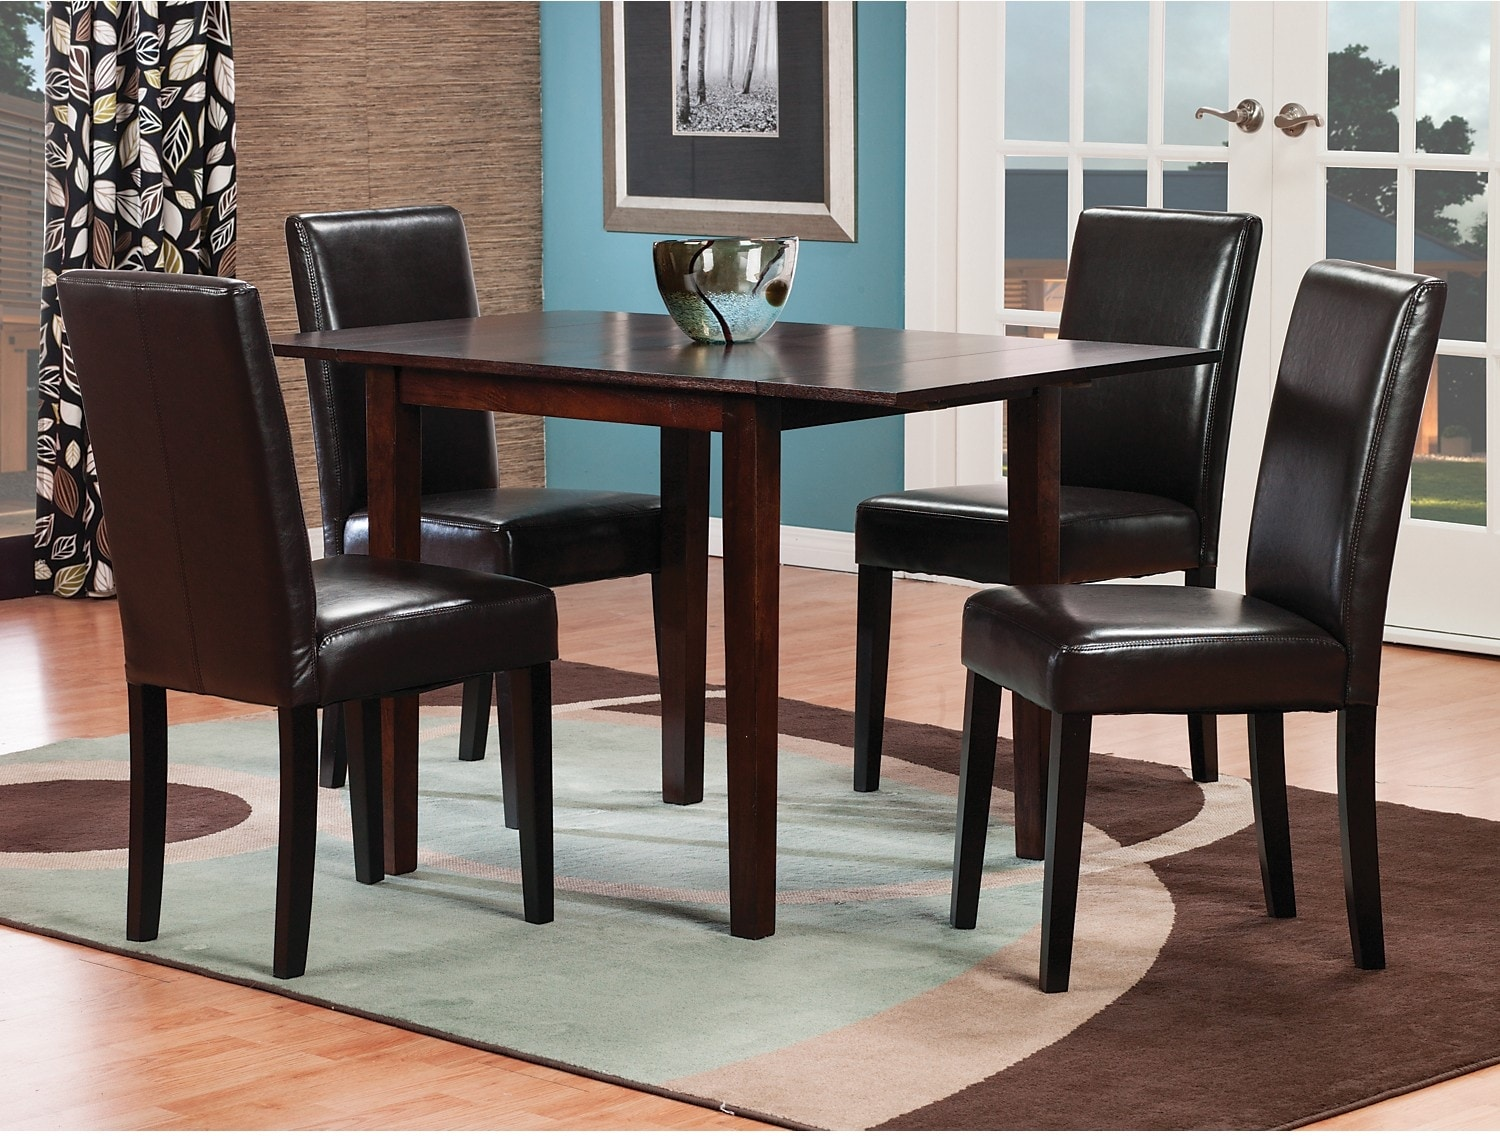 Dining Room Furniture - Dakota 5-Piece Square Table Dining Package with Brown Chairs